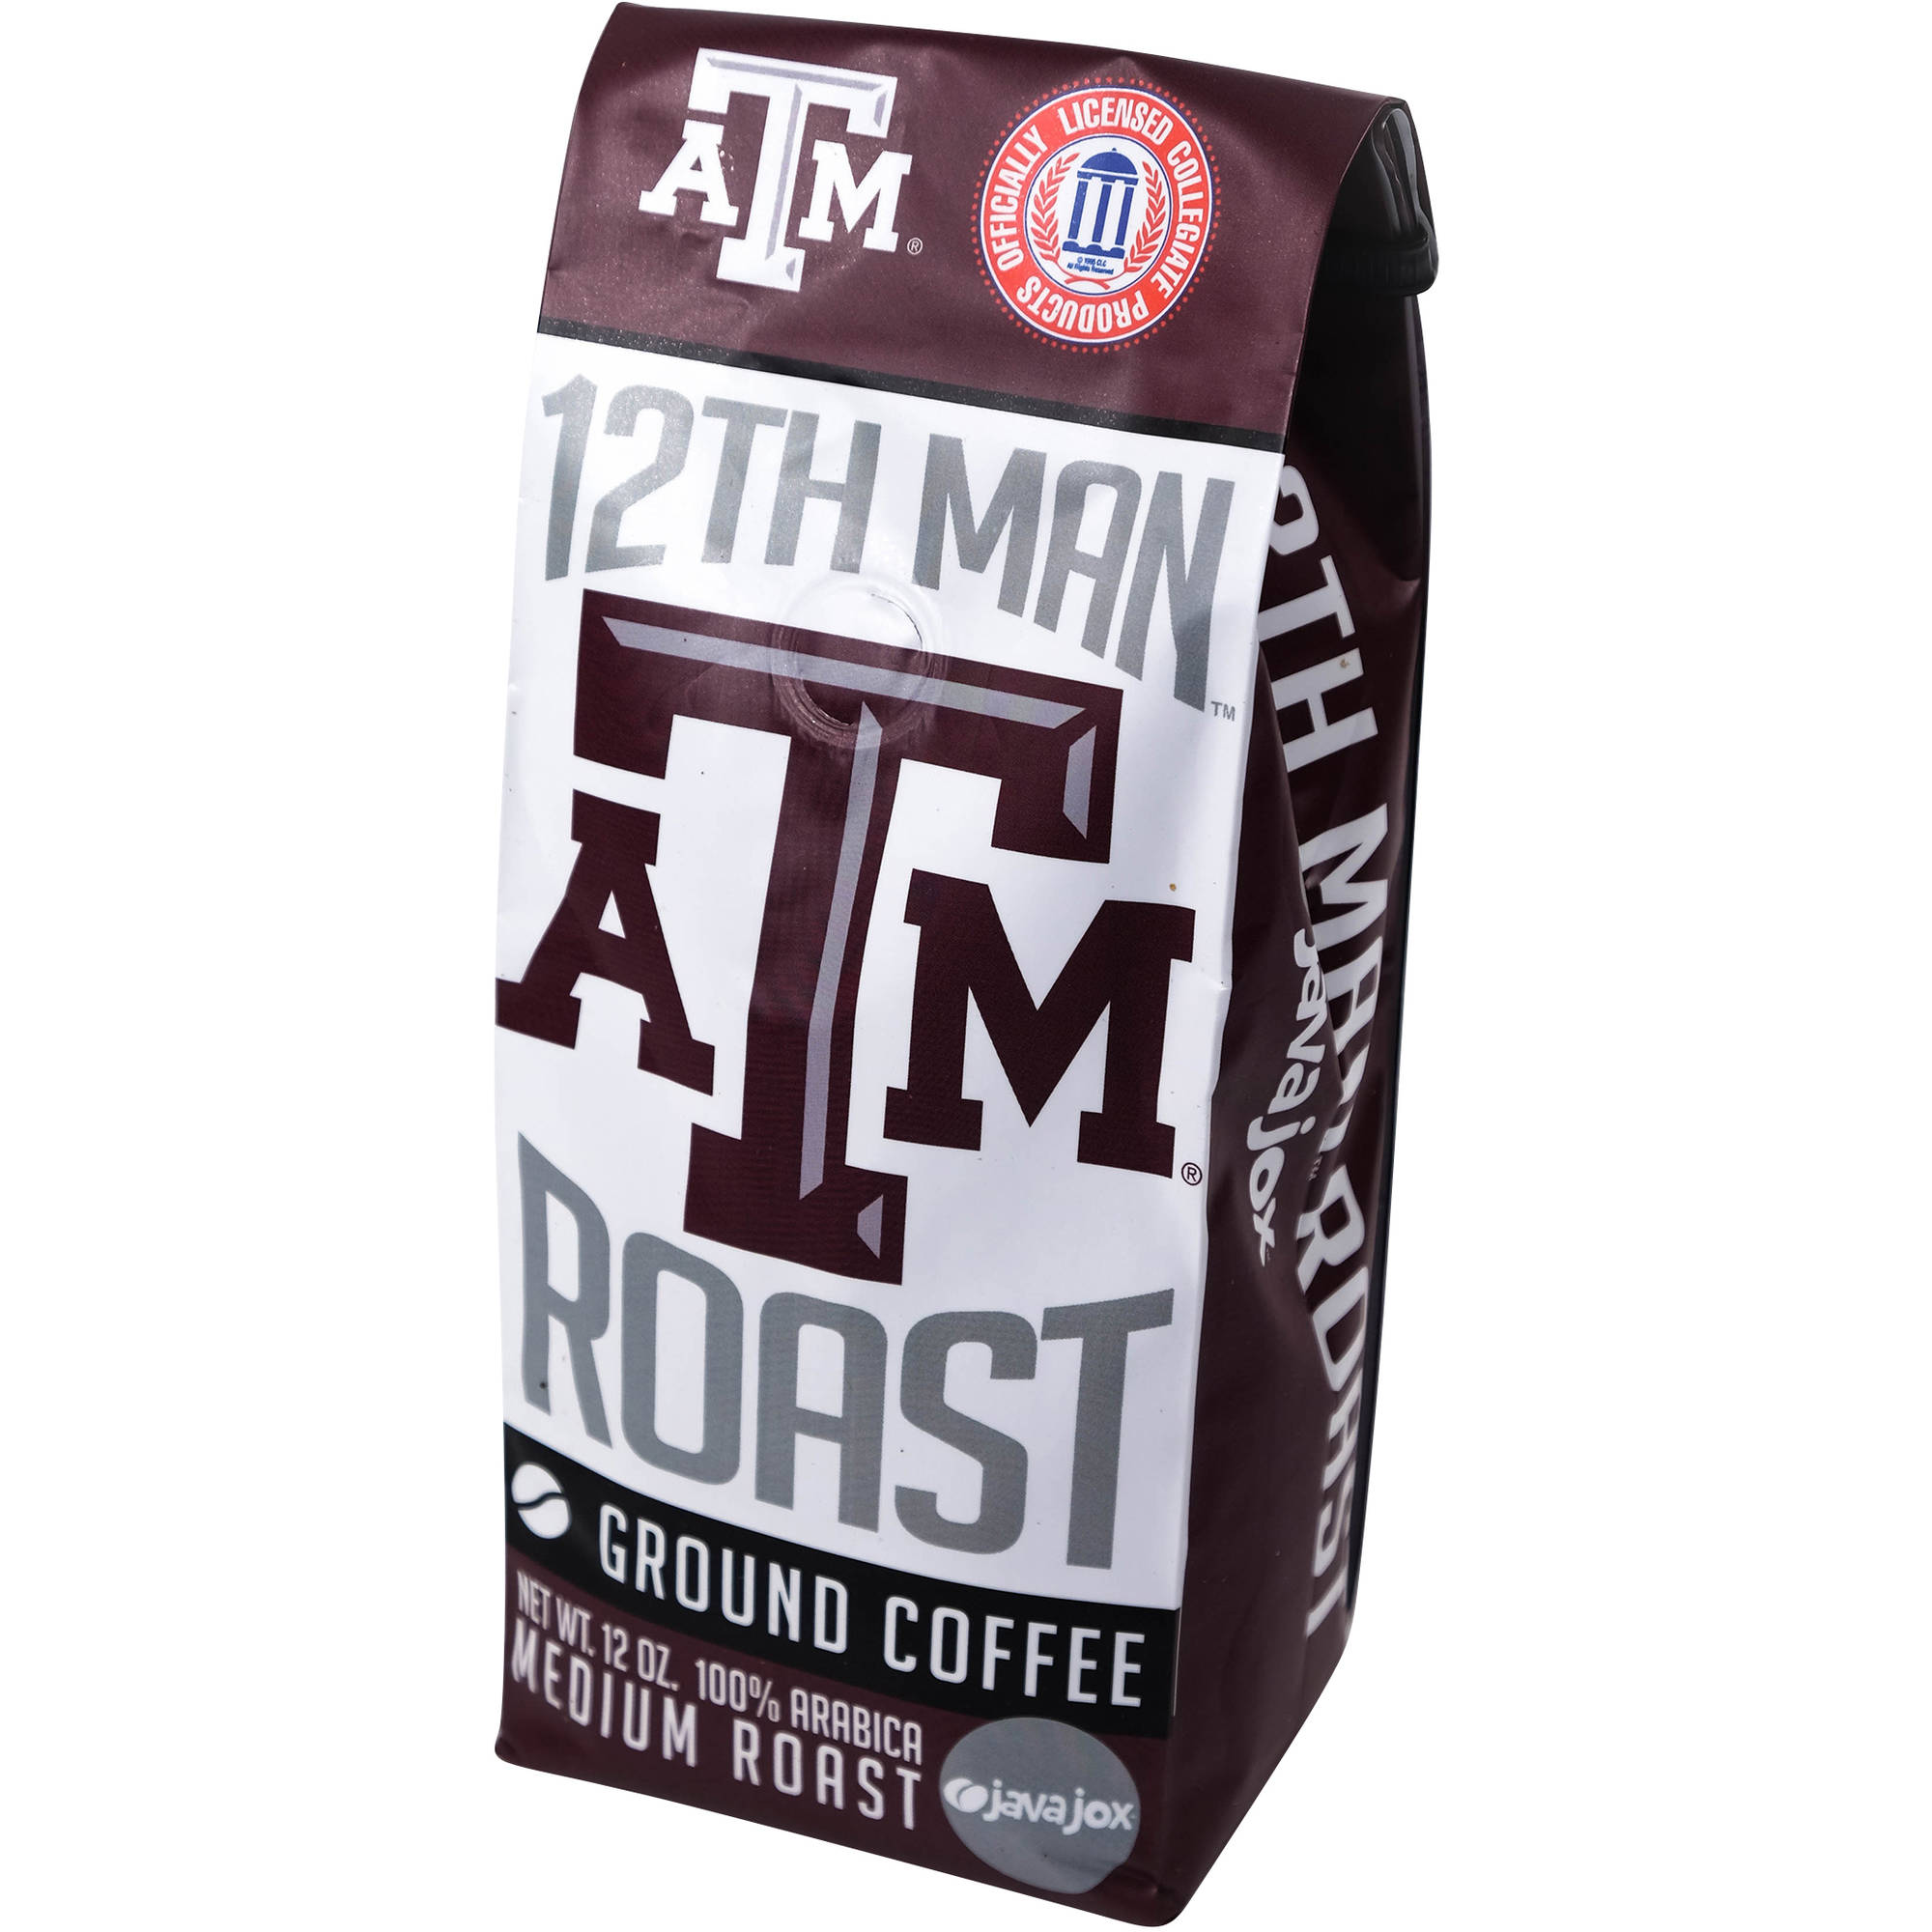 Java Jox ATM 12th Man Roast Ground Coffee, 12 oz